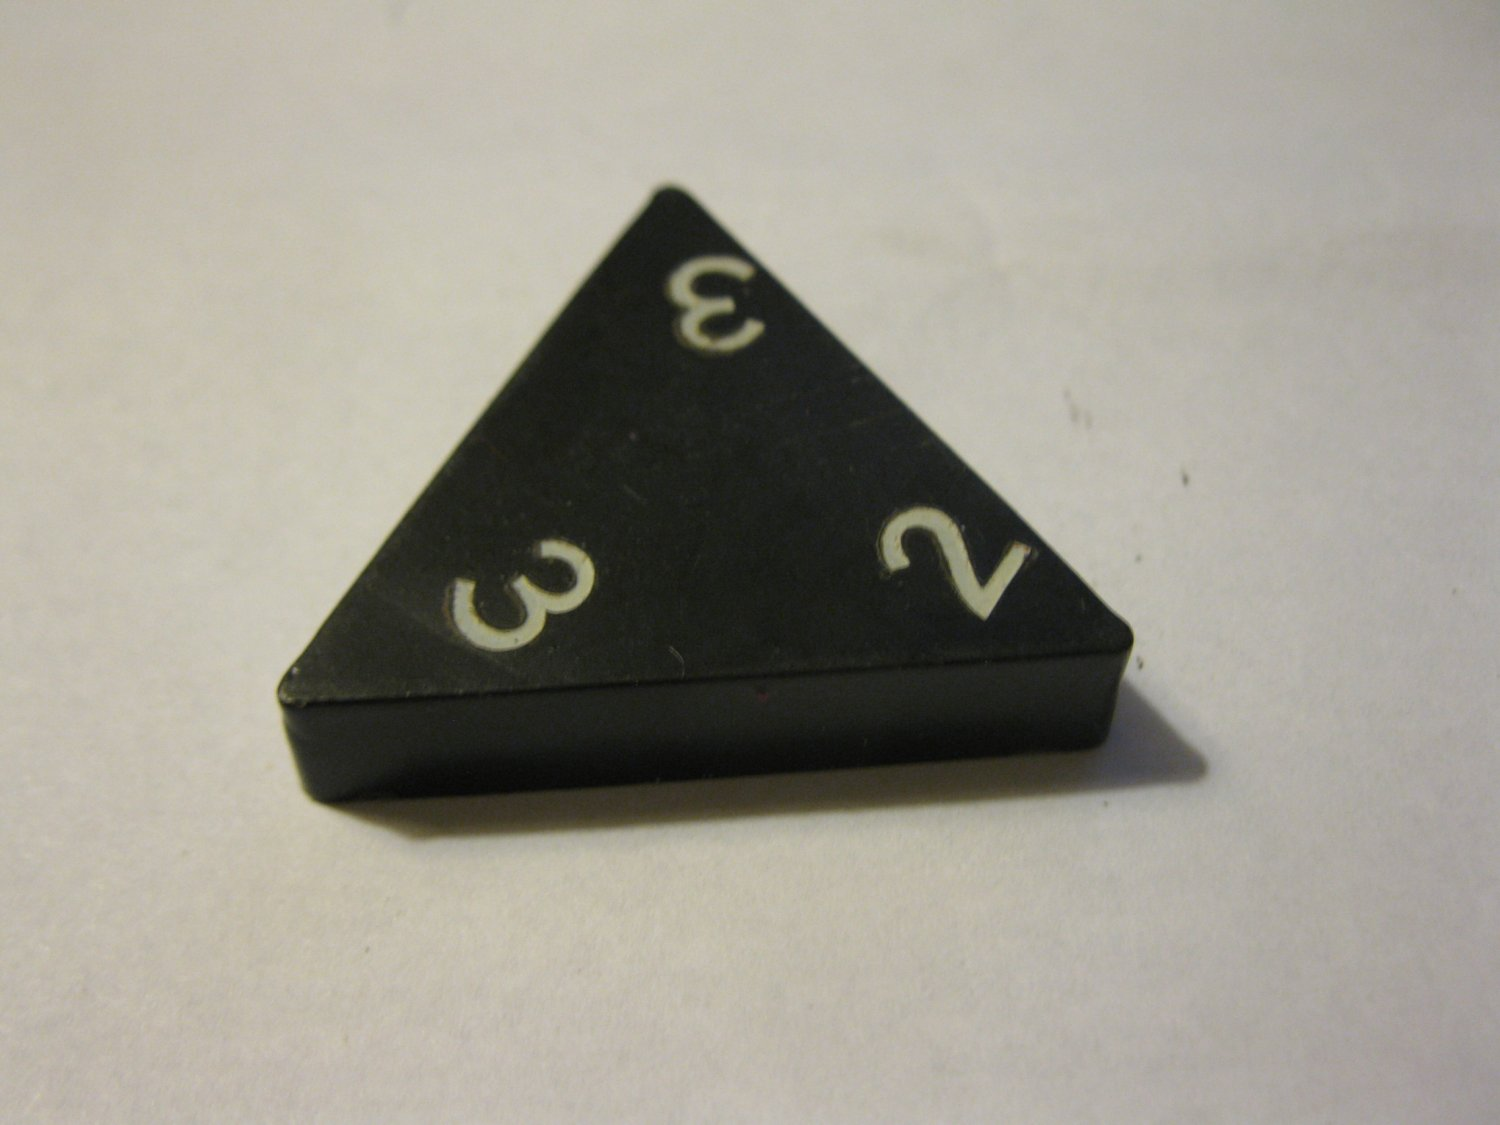 1985 Tri-ominoes Board Game Piece: Triangle # 2-3-3